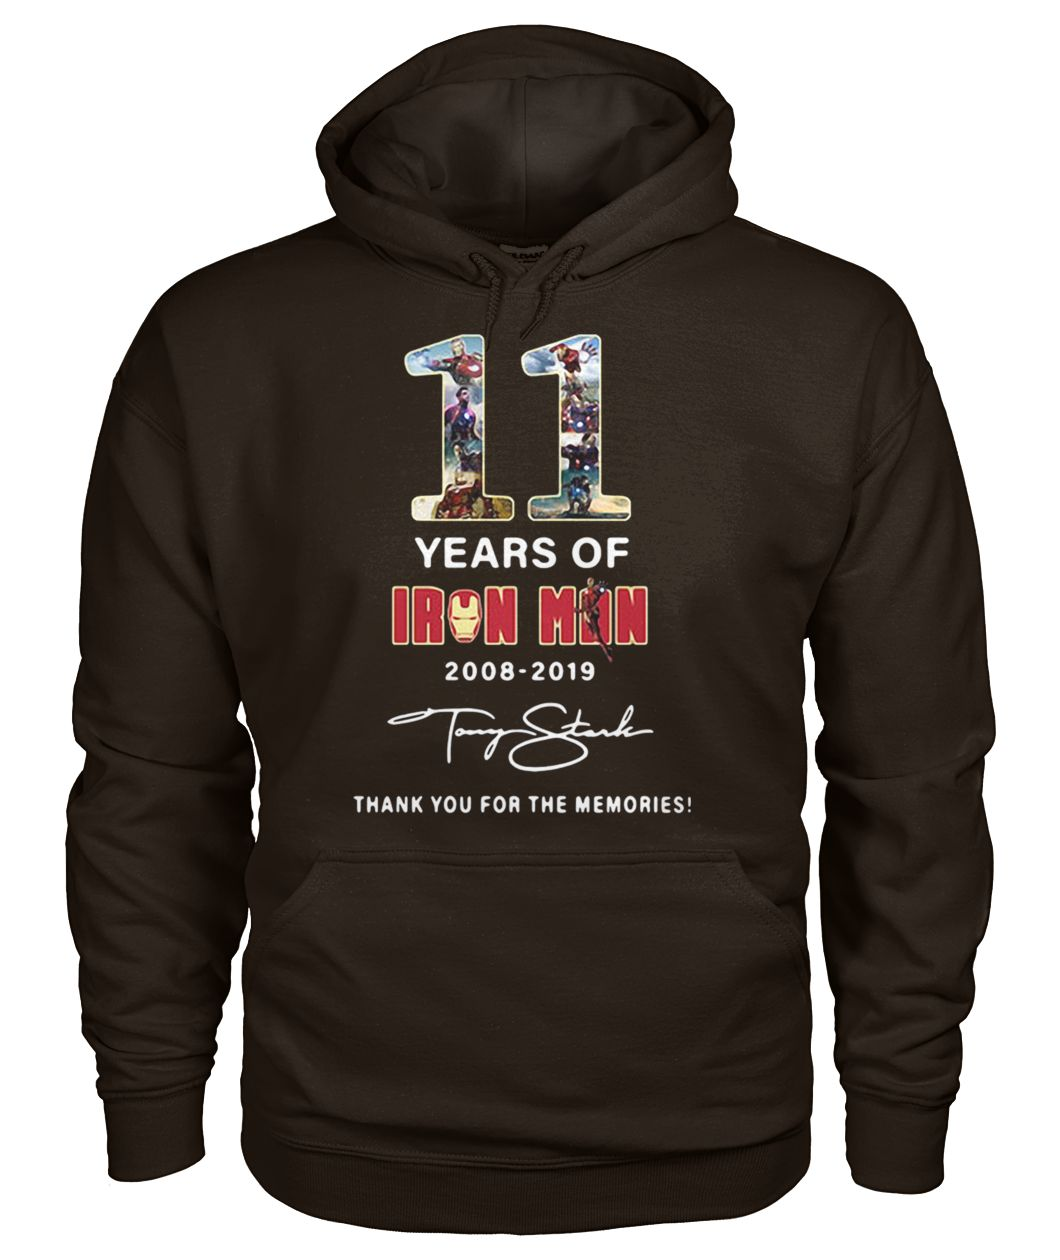 Marvel 11 years of Iron Man 2008 2019 thank you for the memories gildan hoodie